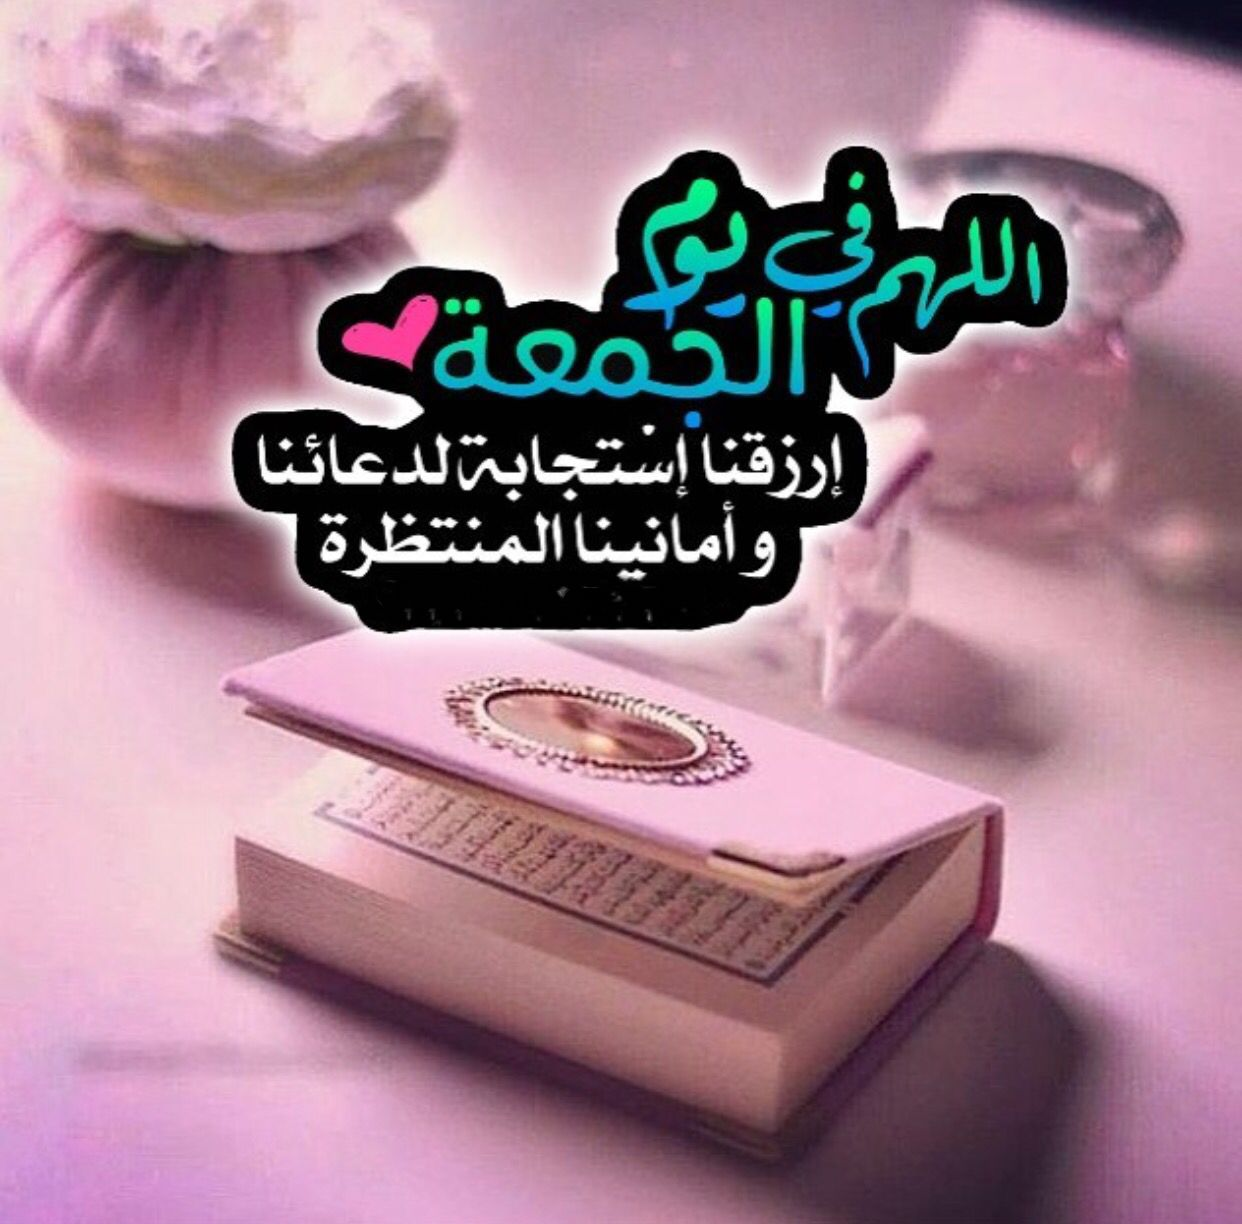 Pin By بنت محمد On جمعة طيبة Friday Wishes Blessed Friday Holy Quran